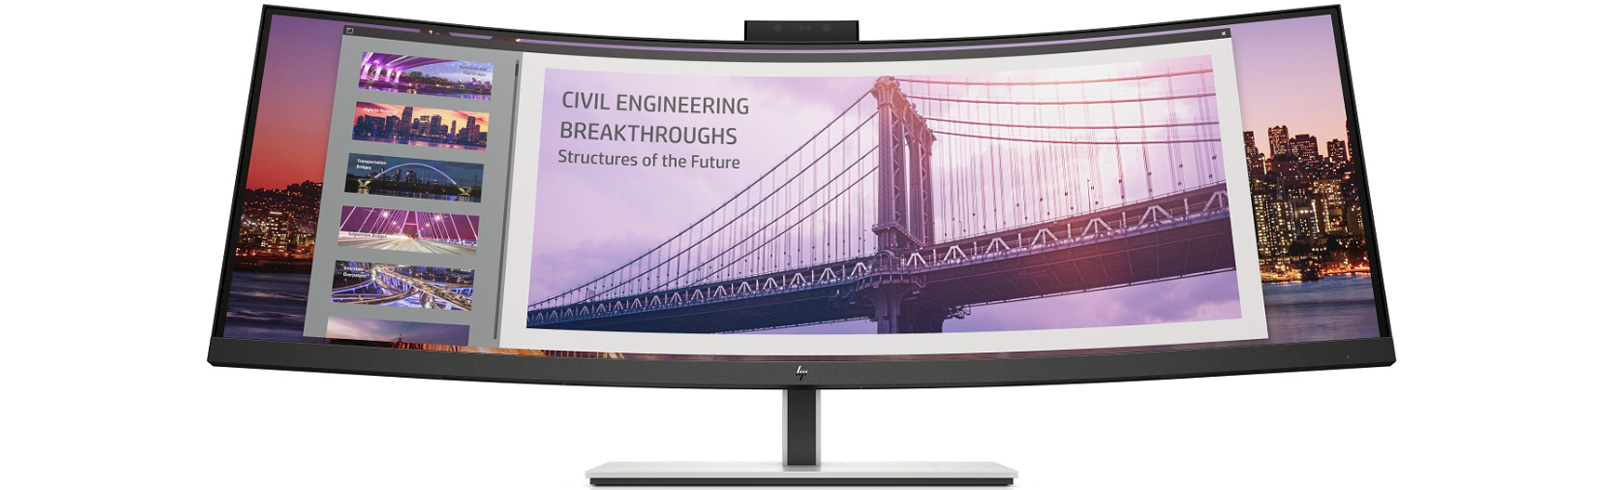 HP announces a duo of curved desktop monitors for everyday work - the HP S430c and the HP E344c